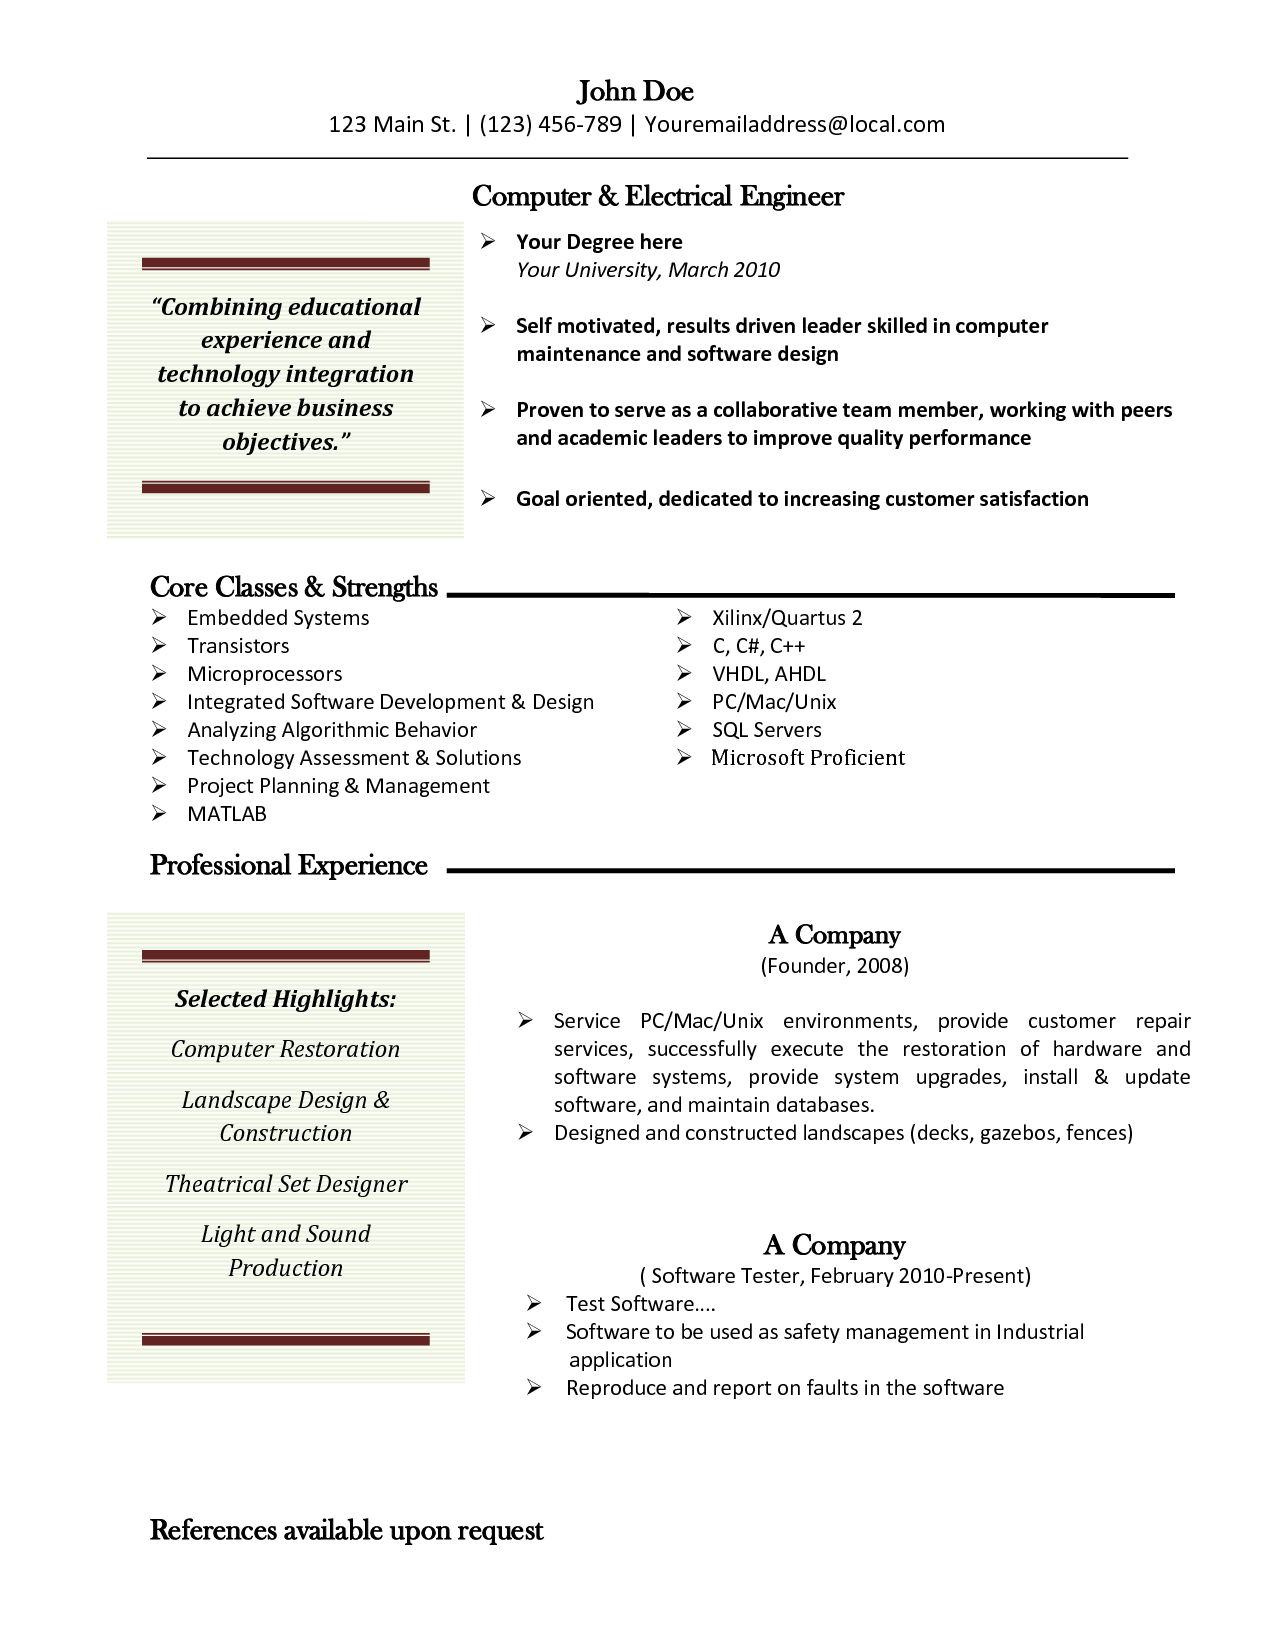 Free Resume Templates Word 2010 Custom Freeresumetemplatesformaccqjykibi 1275×1650  Cv